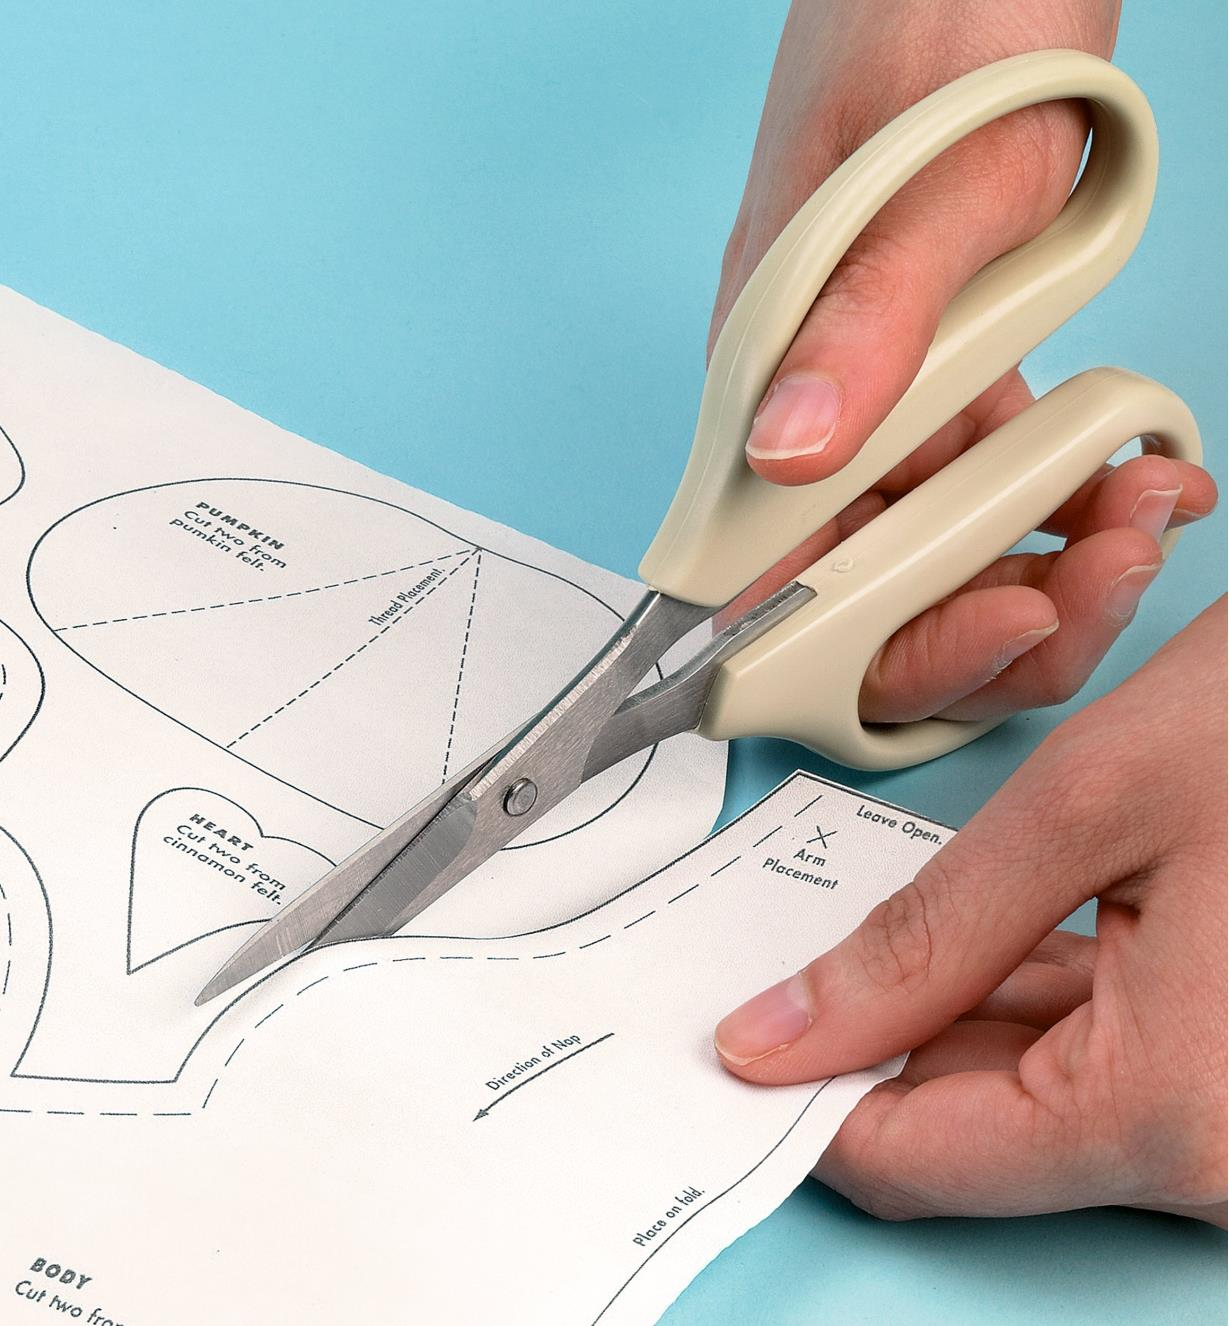 Cutting a sewing pattern with Precision Scissors